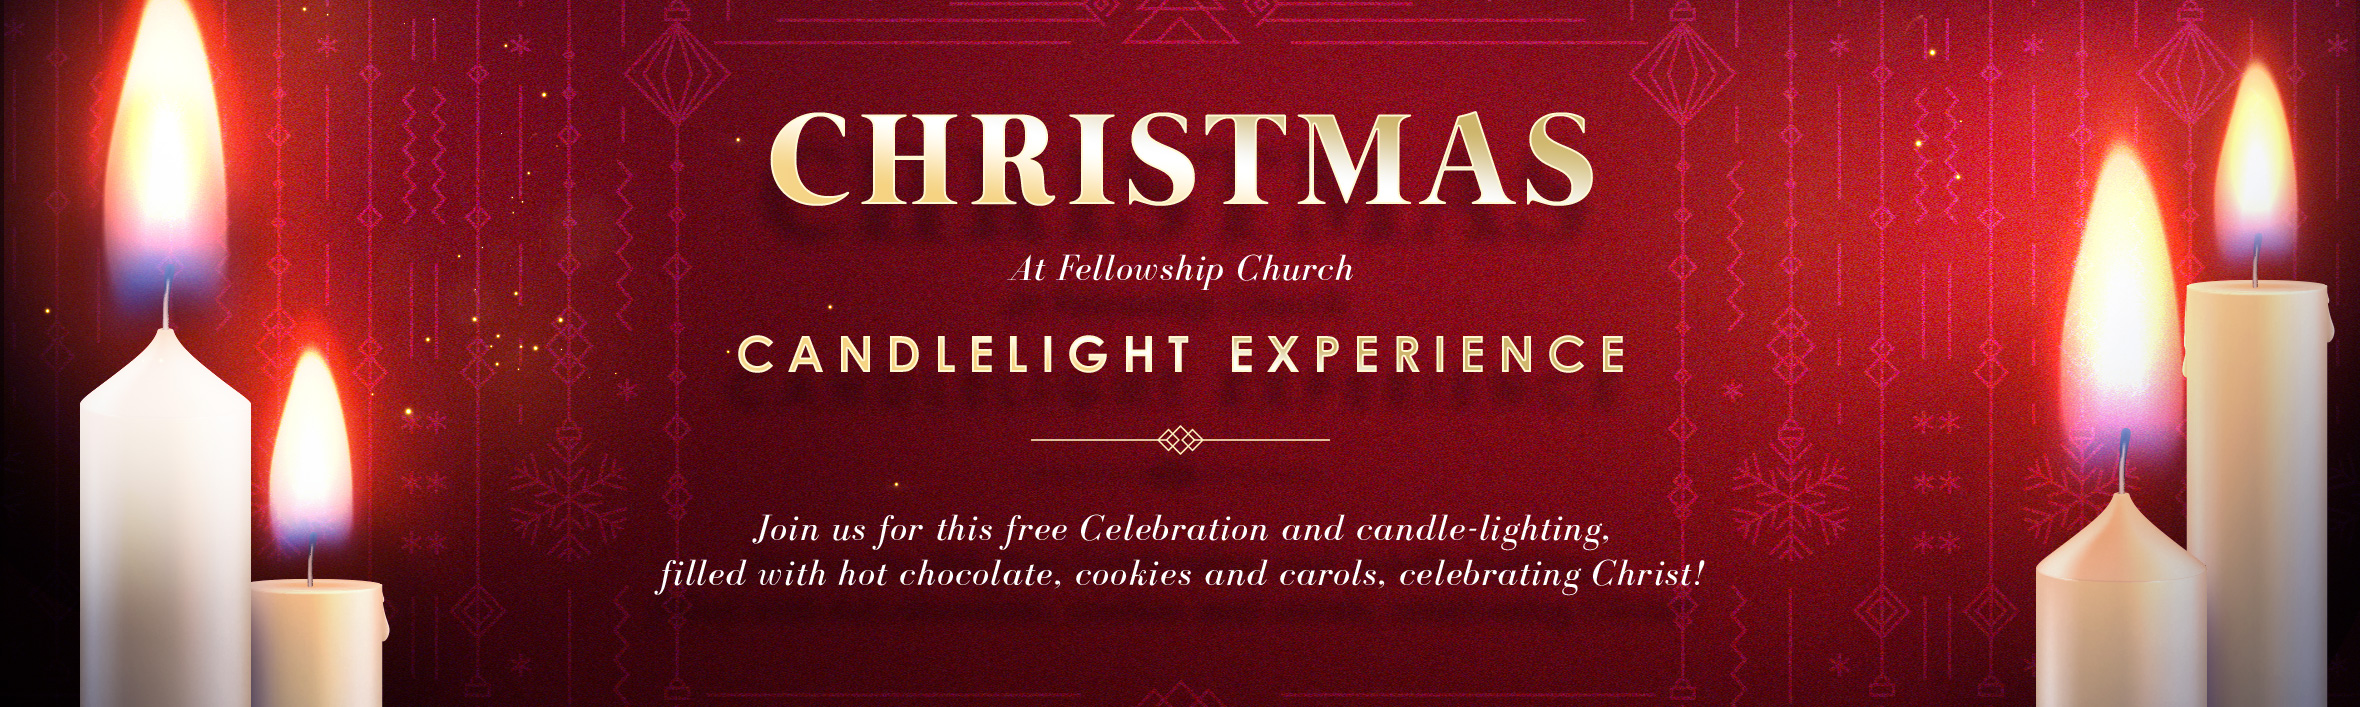 Christmas Candlelight Experiences